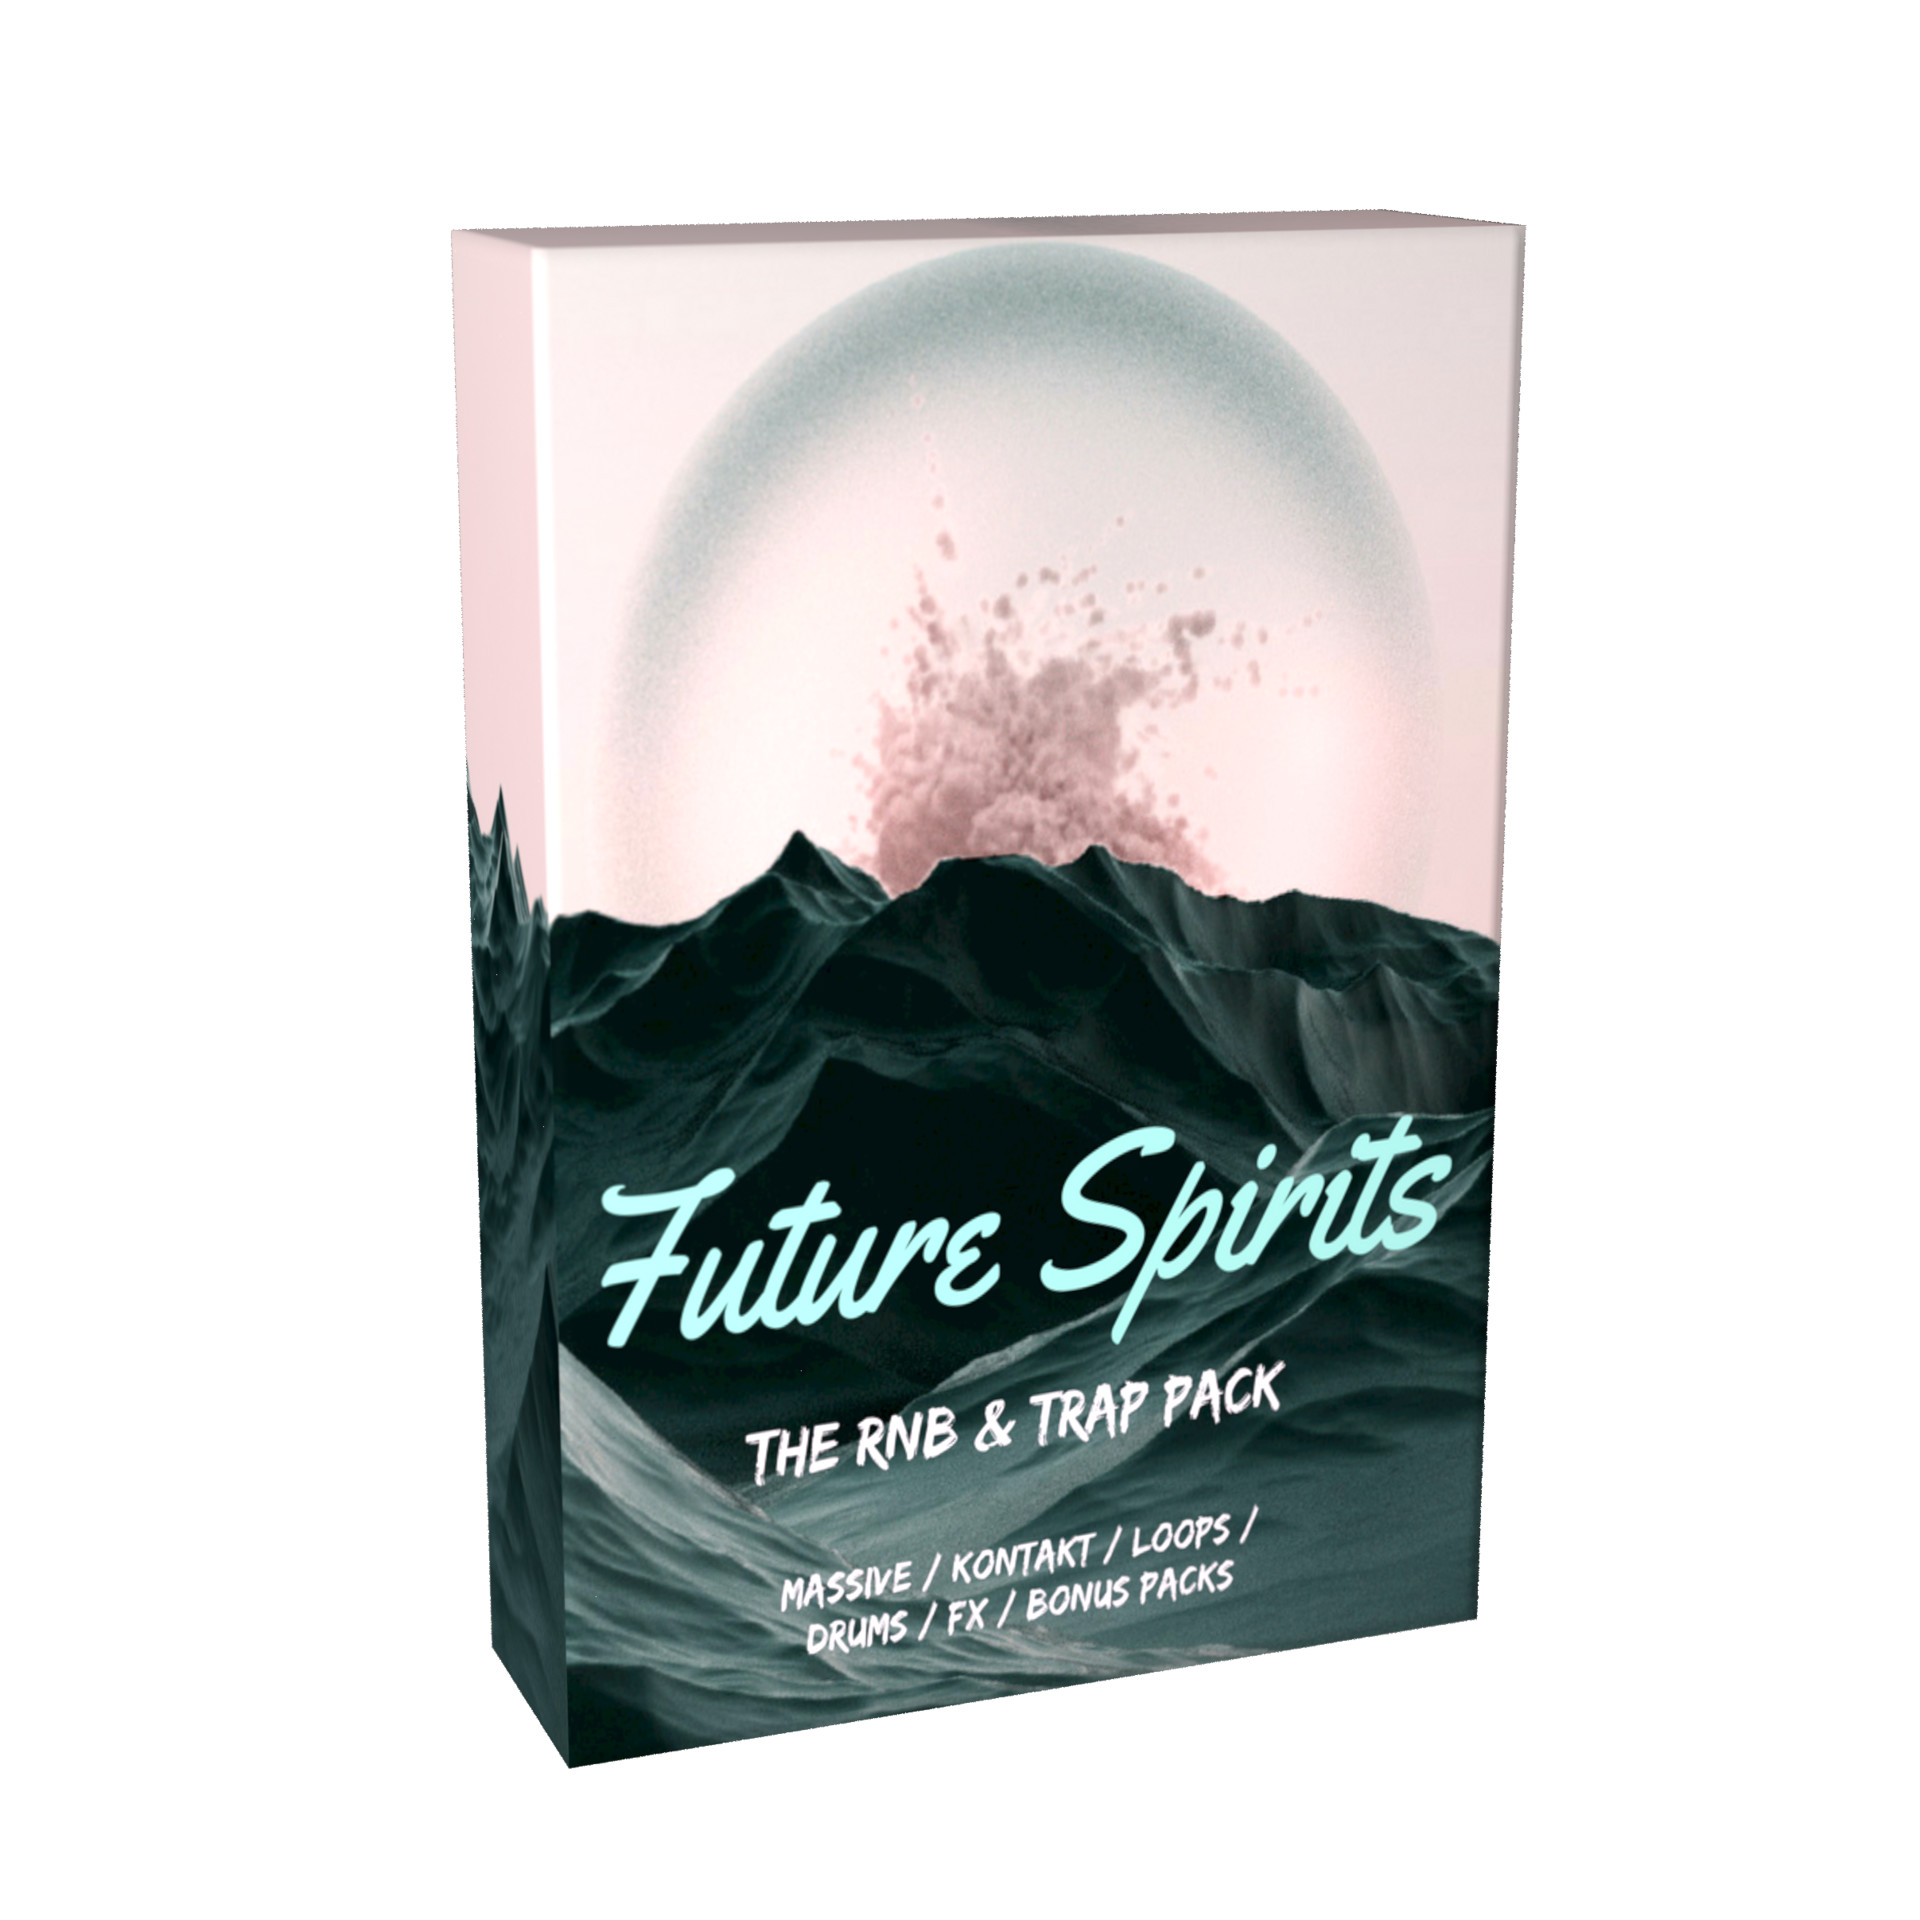 Klaas van egdom future spirits web